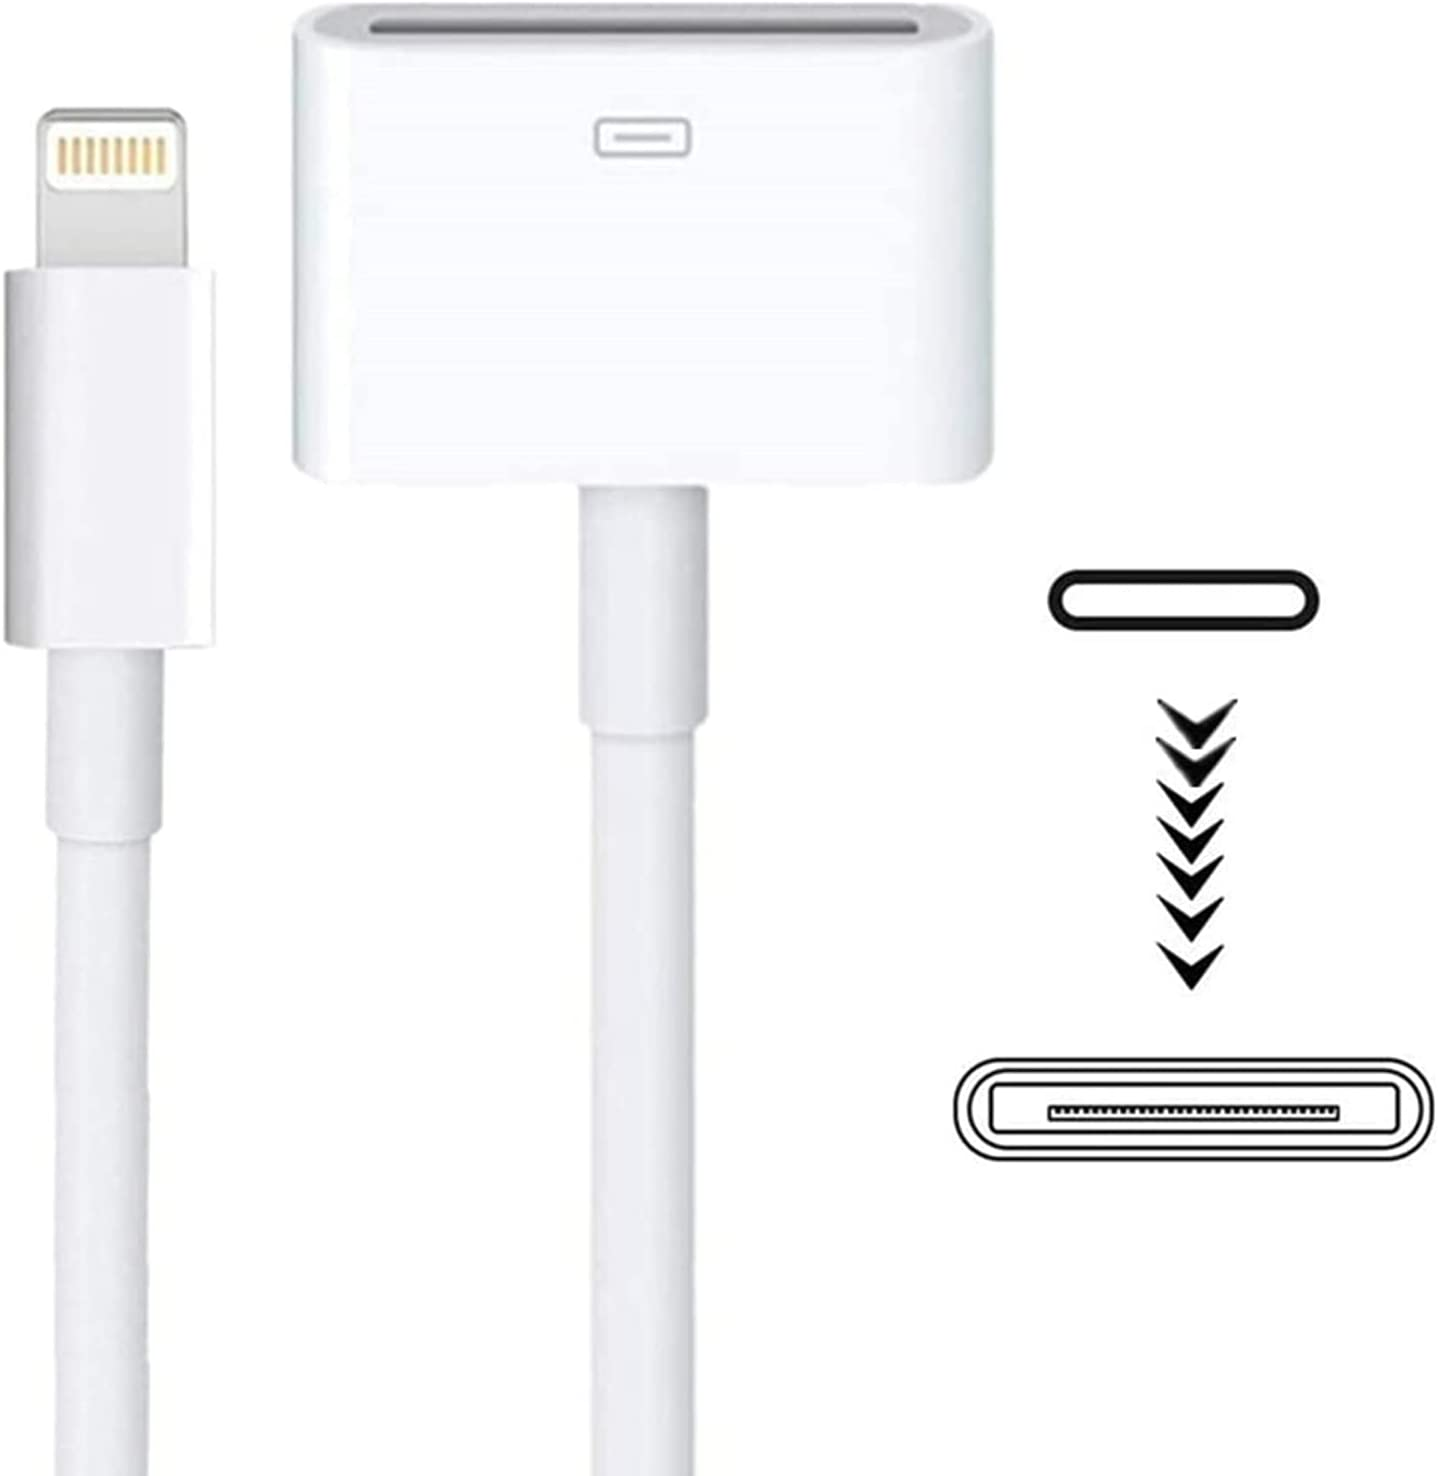 Lightning to 30 Pin Adapter sharllen MFi Certified 8 Pin Male to 30 Pin Female Charge & Sync Cable Adapter Converter with iPhone Charger Cable Compatible iPhone 12 11 X 8 7 6P 5S /iPad/iPod (White)